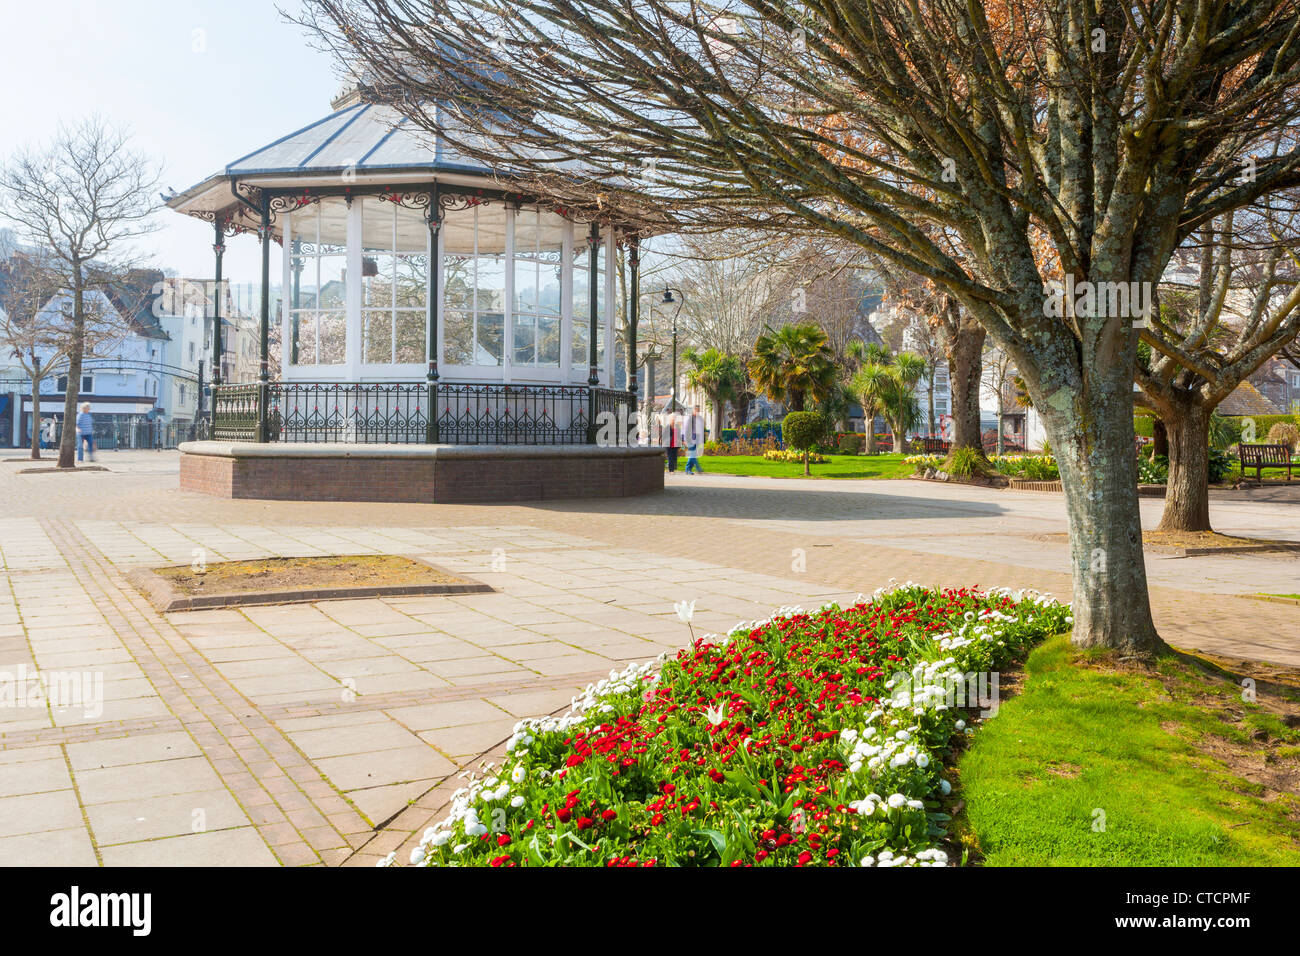 Flower beds and public space at Dartmouth Devon England UK - Stock Image